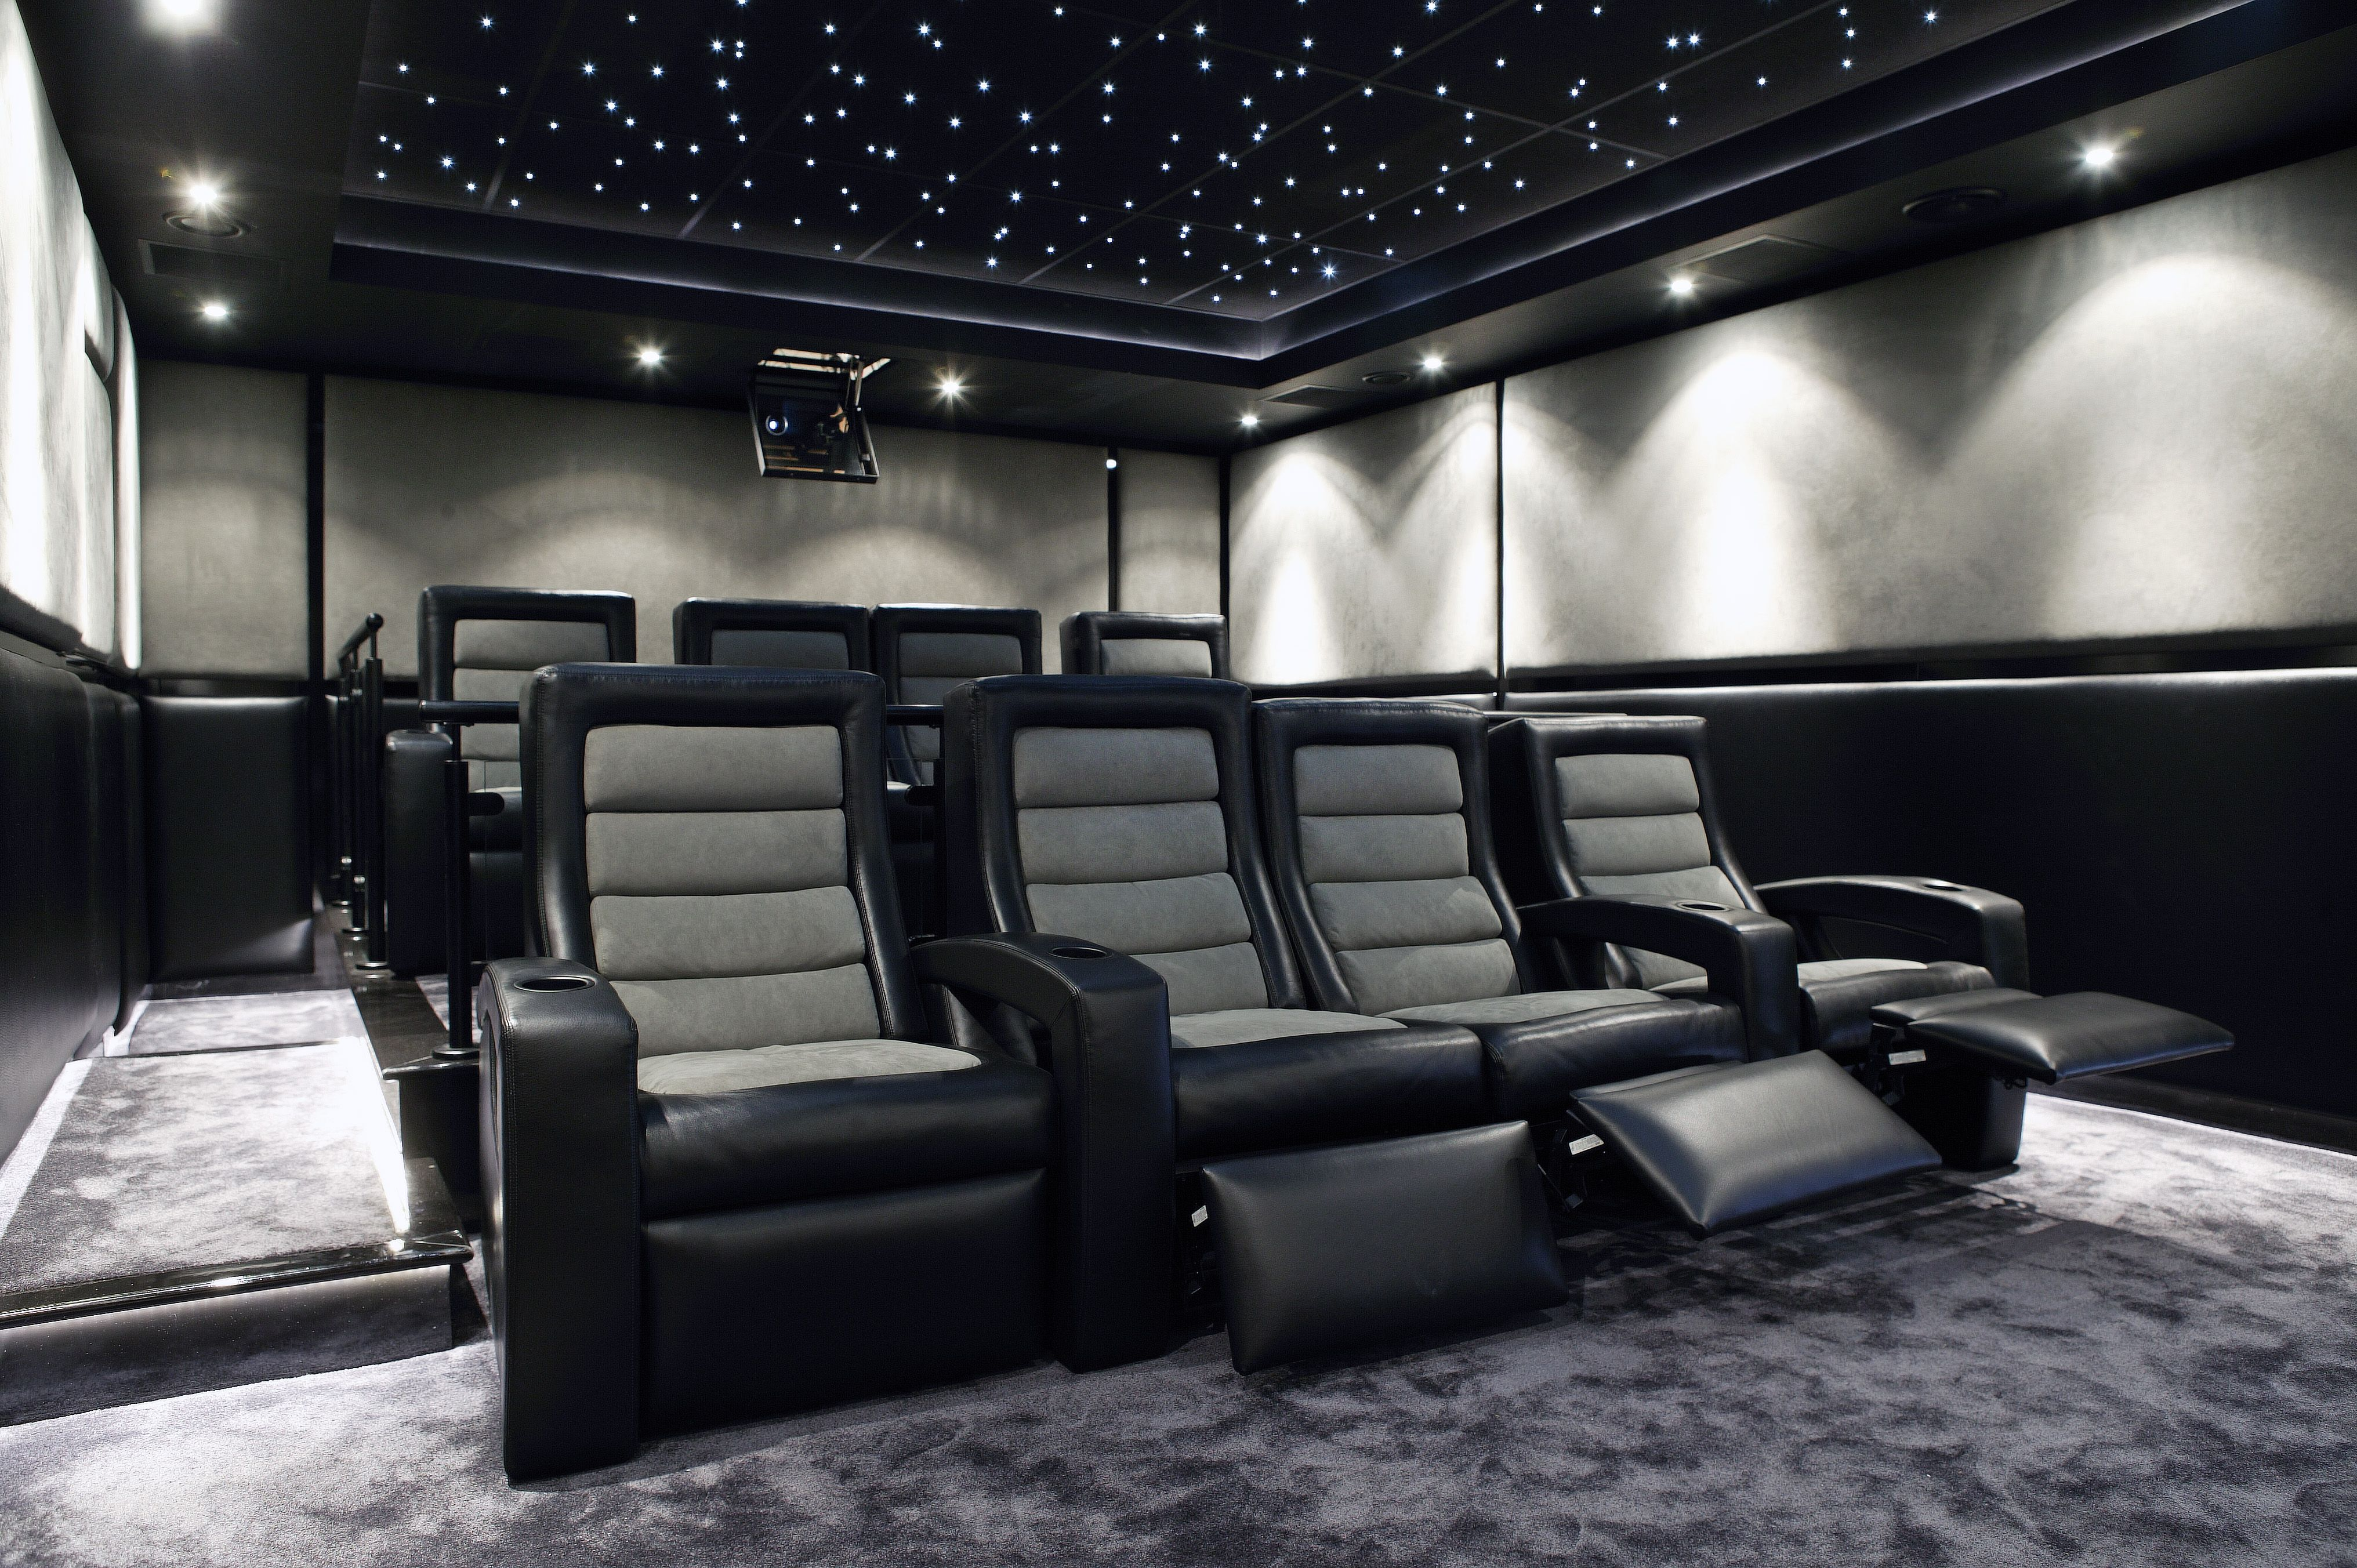 Fiber Optic Ceiling In The Theater Home Theater Rooms Home Theater Seating Home Theater Setup